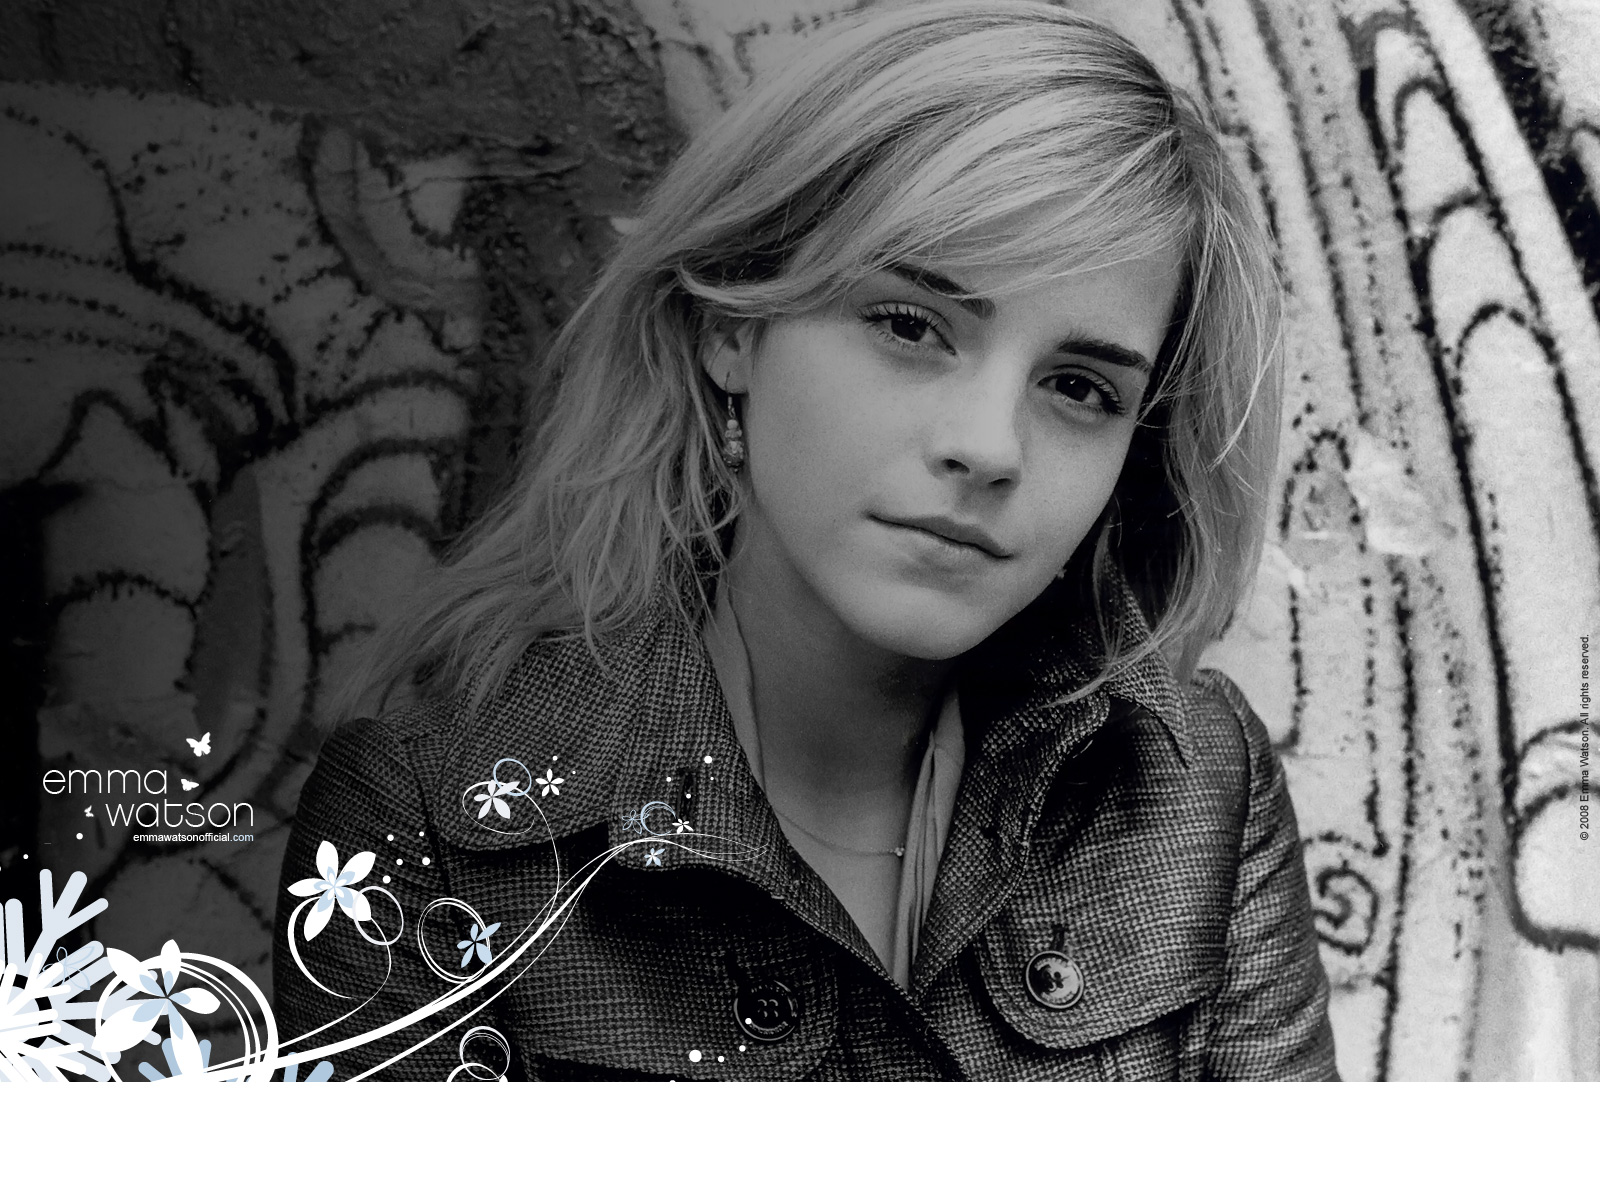 http://4.bp.blogspot.com/-_FpnsZYLdyI/TlgBynZGpJI/AAAAAAAACOg/JQhrfYpitBQ/s1600/emma-watson-wallpapers+black+and+white.jpg